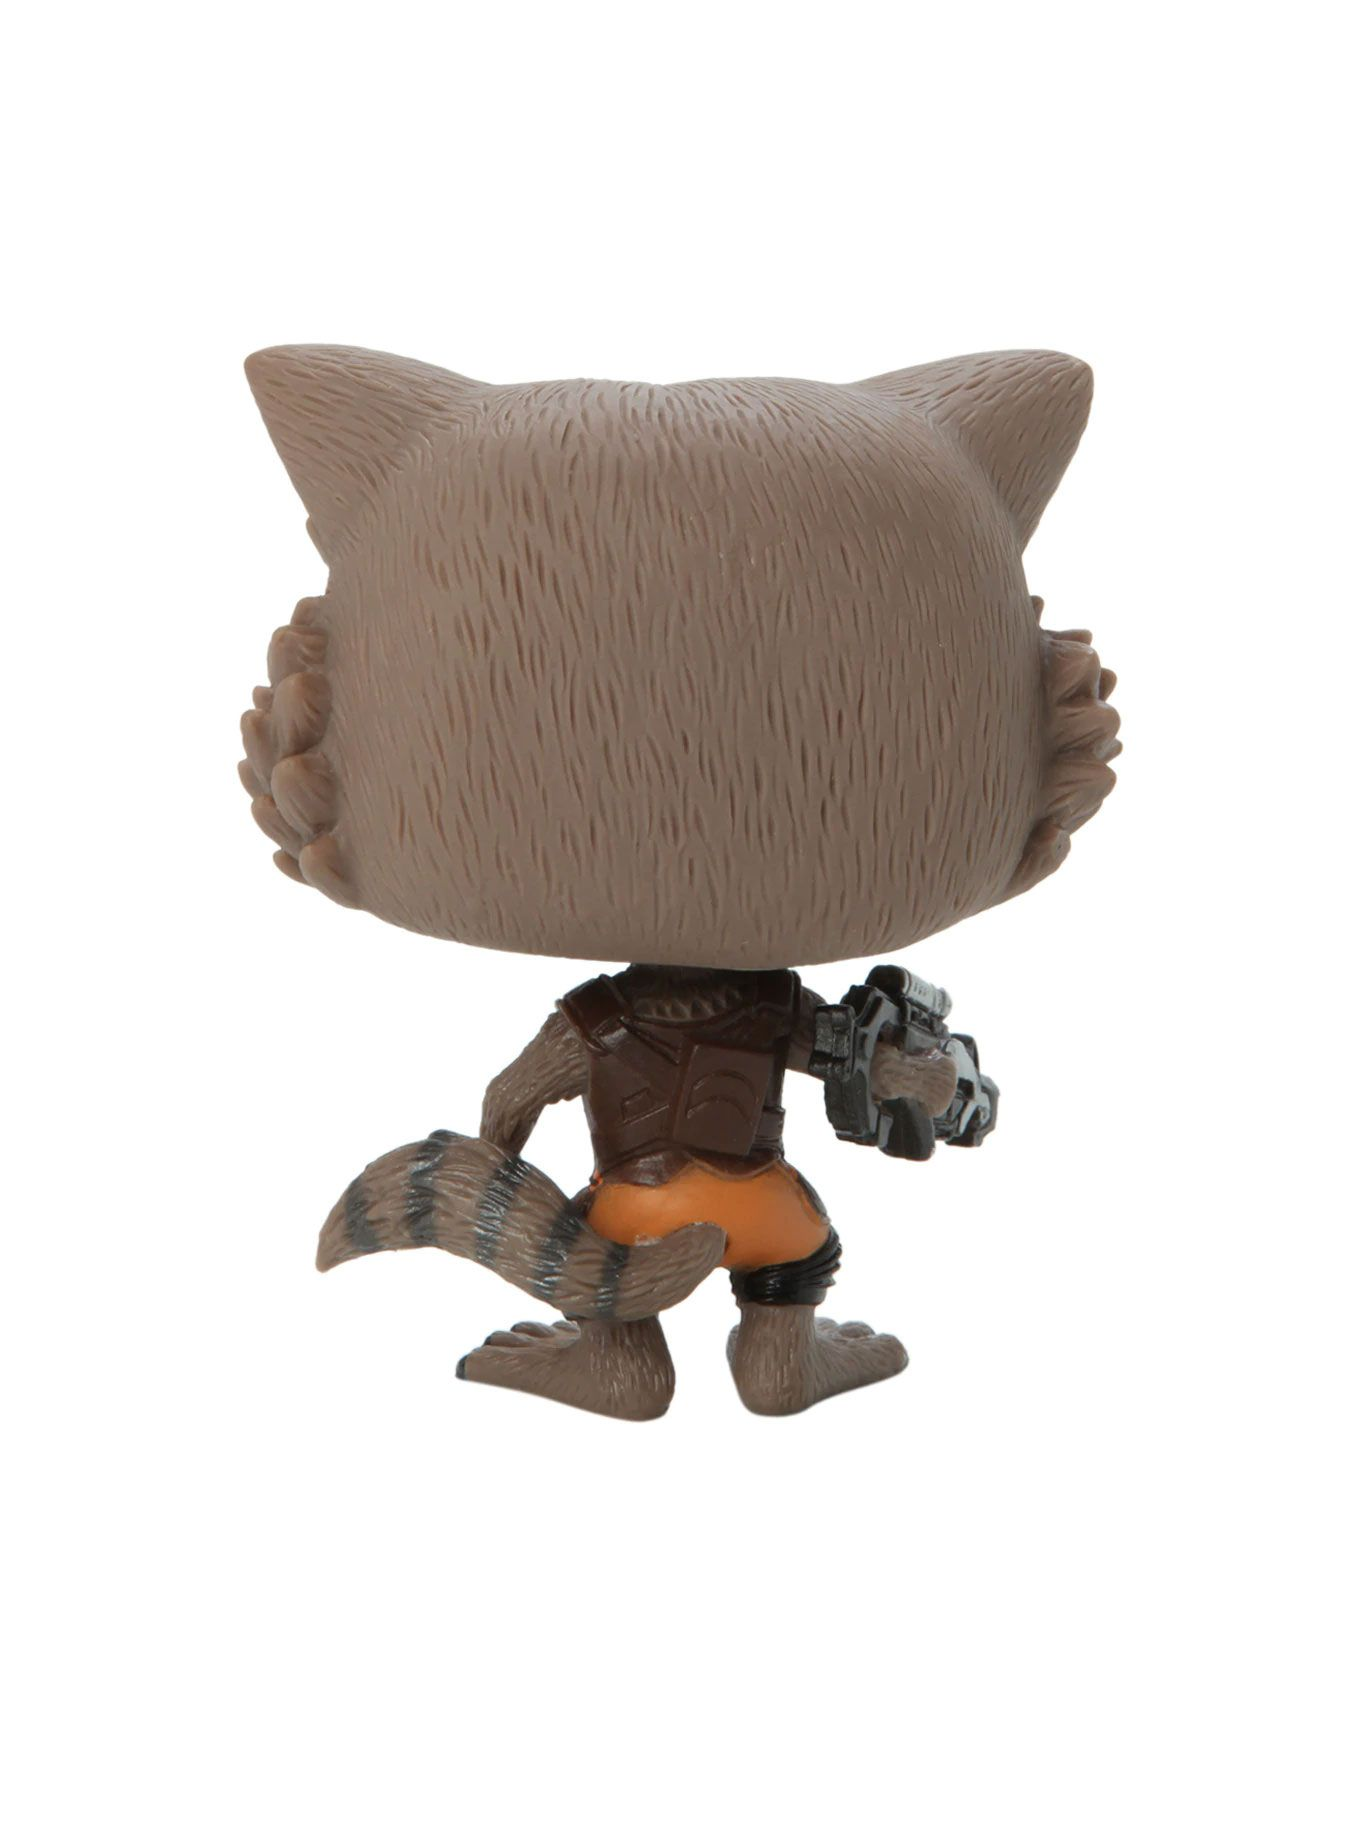 Rocket Raccoon #48 - Guardians of the Galaxy ( Guardiões da Galáxia ) - Funko Pop! Marvel